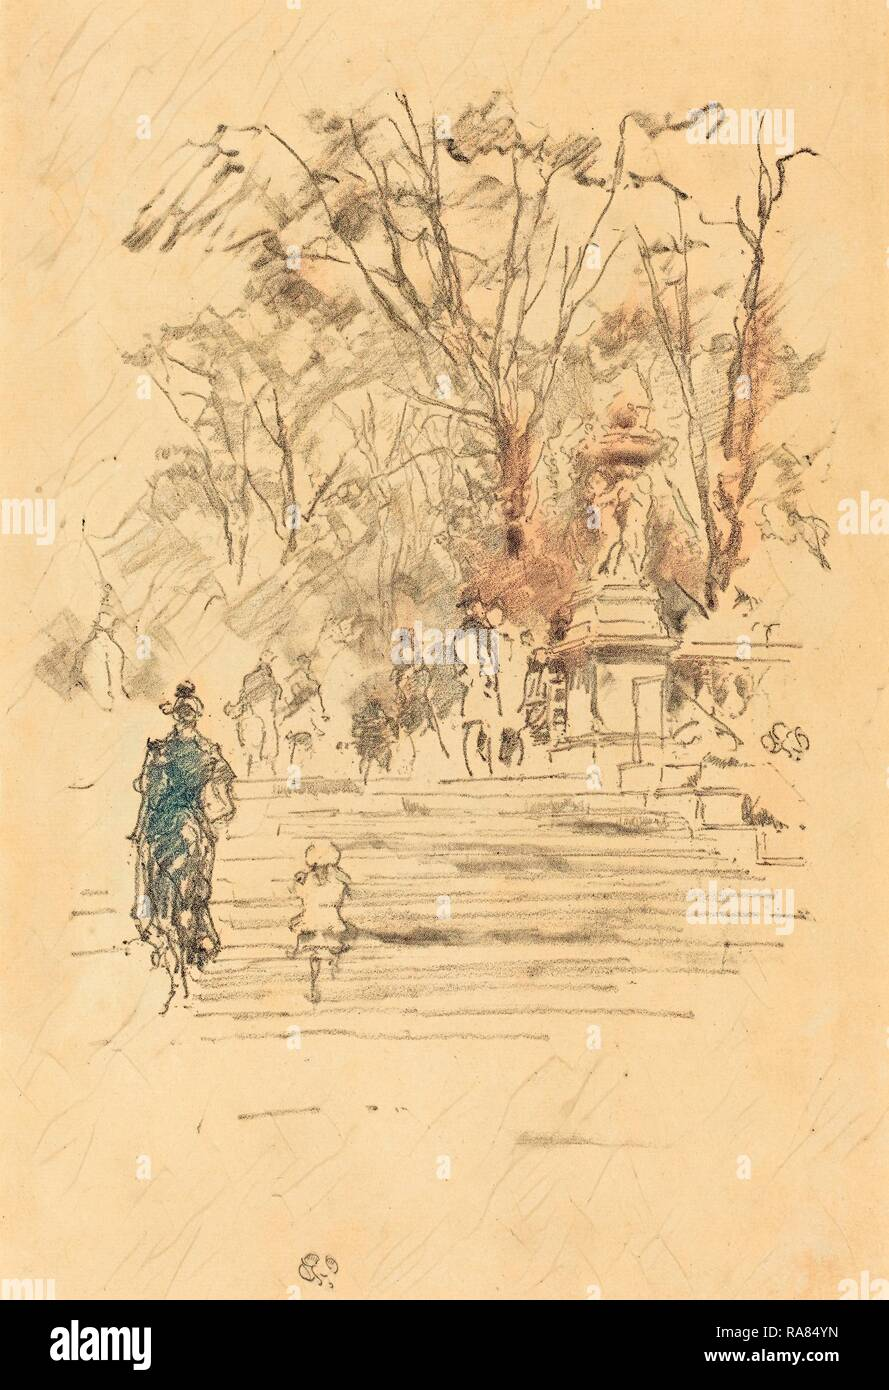 James McNeill Whistler (American, 1834 - 1903), The Steps, Luxembourg Gardens, 1893, lithograph. Reimagined - Stock Image